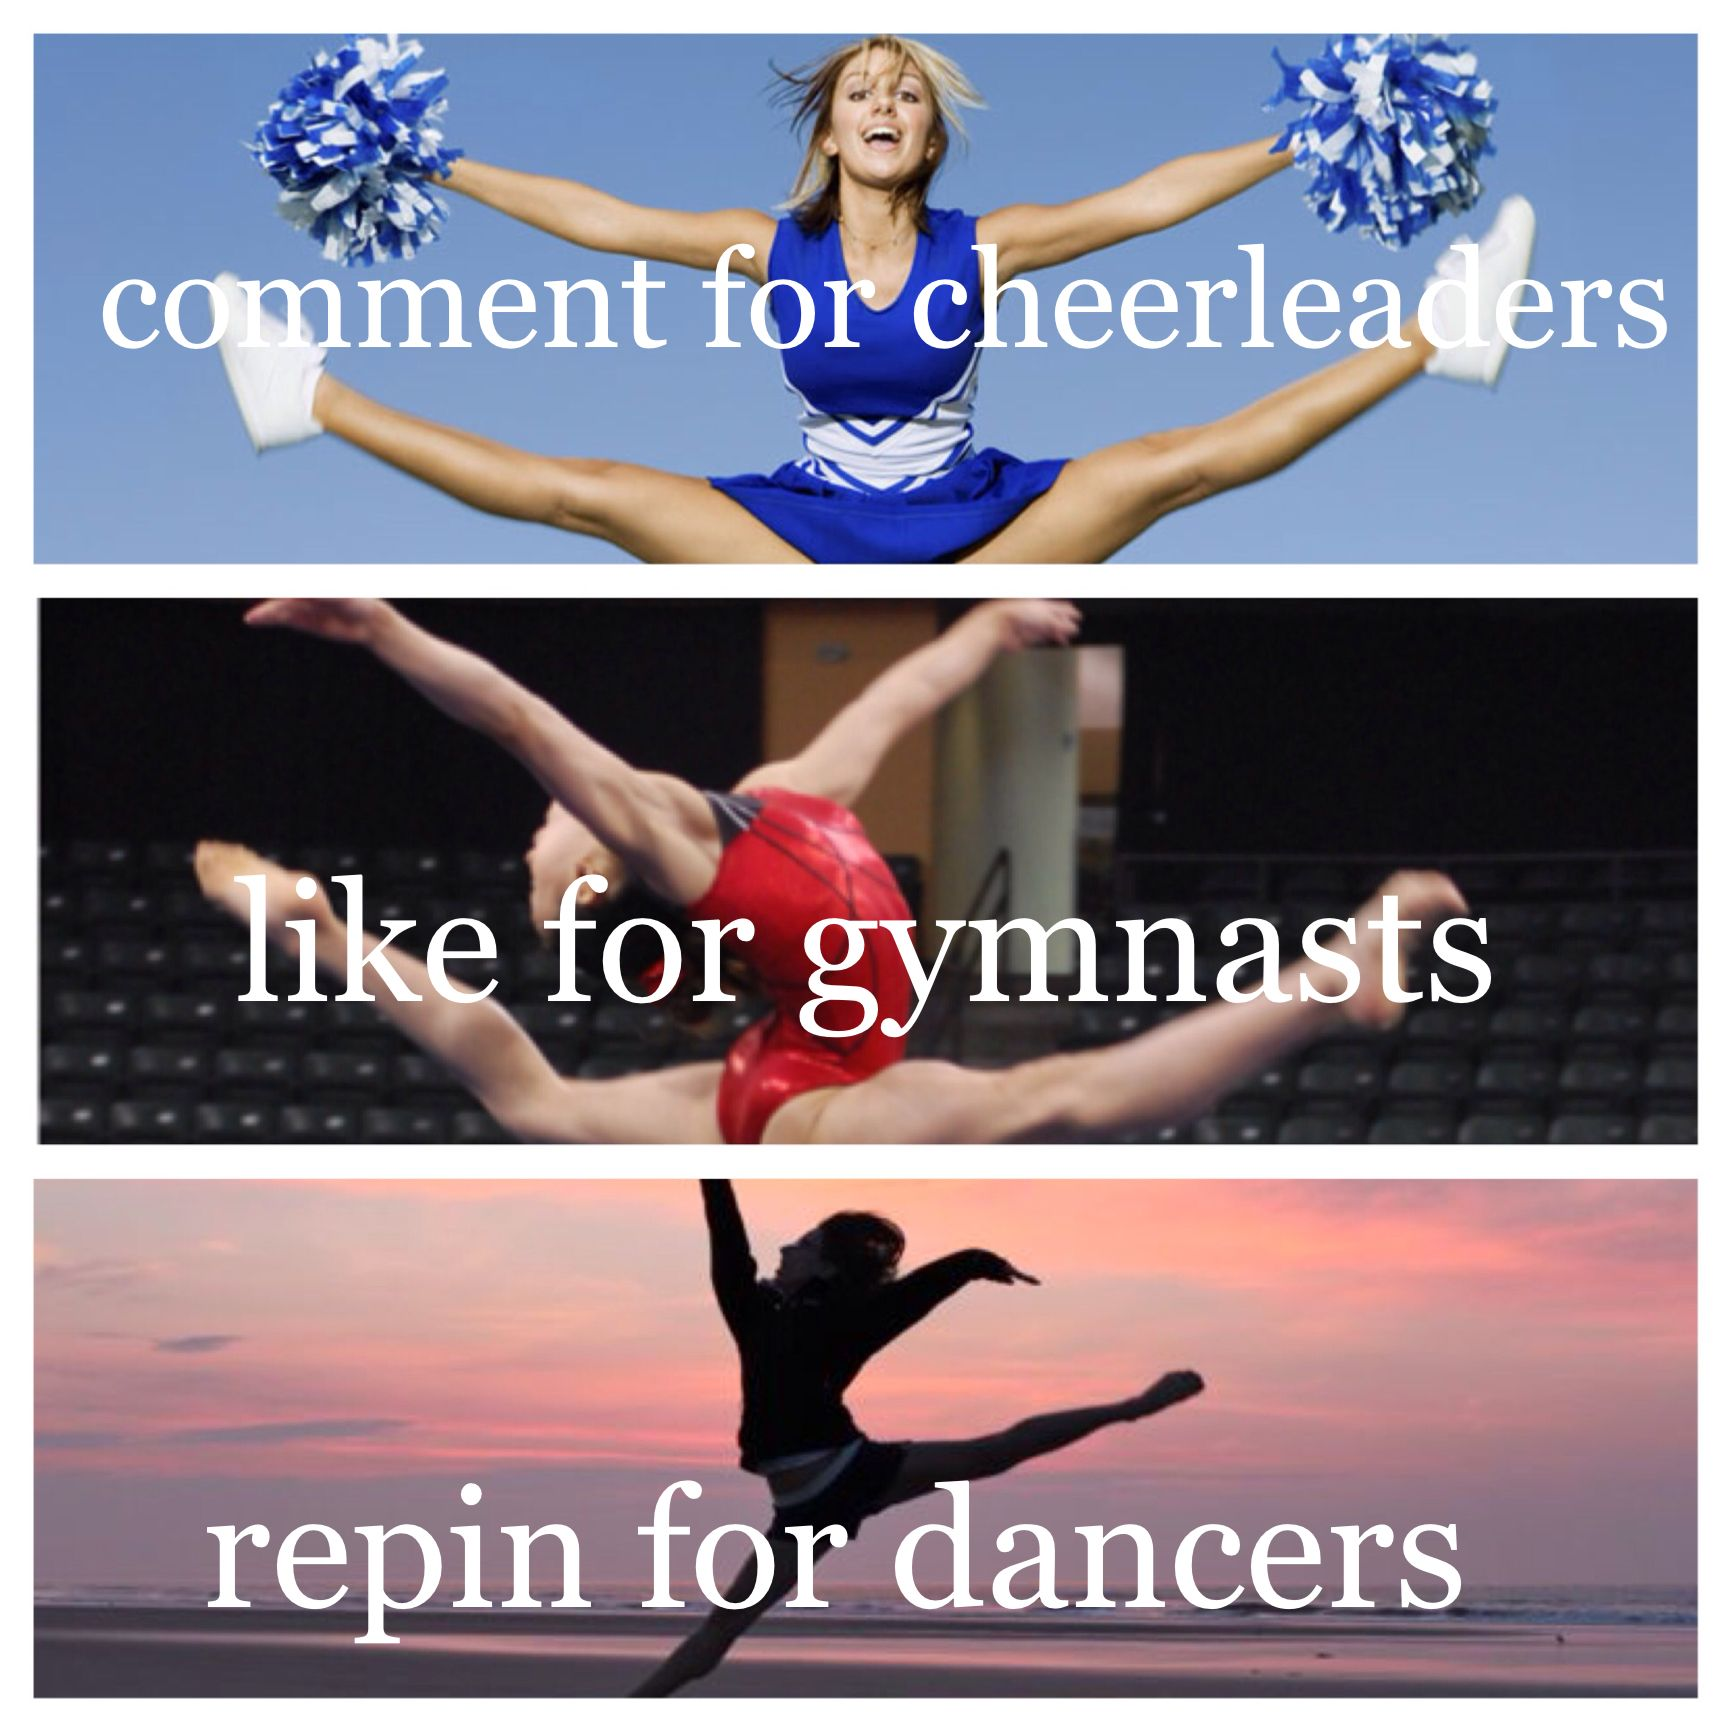 Writing An Essay On Why I Want To Be A Cheerleader?